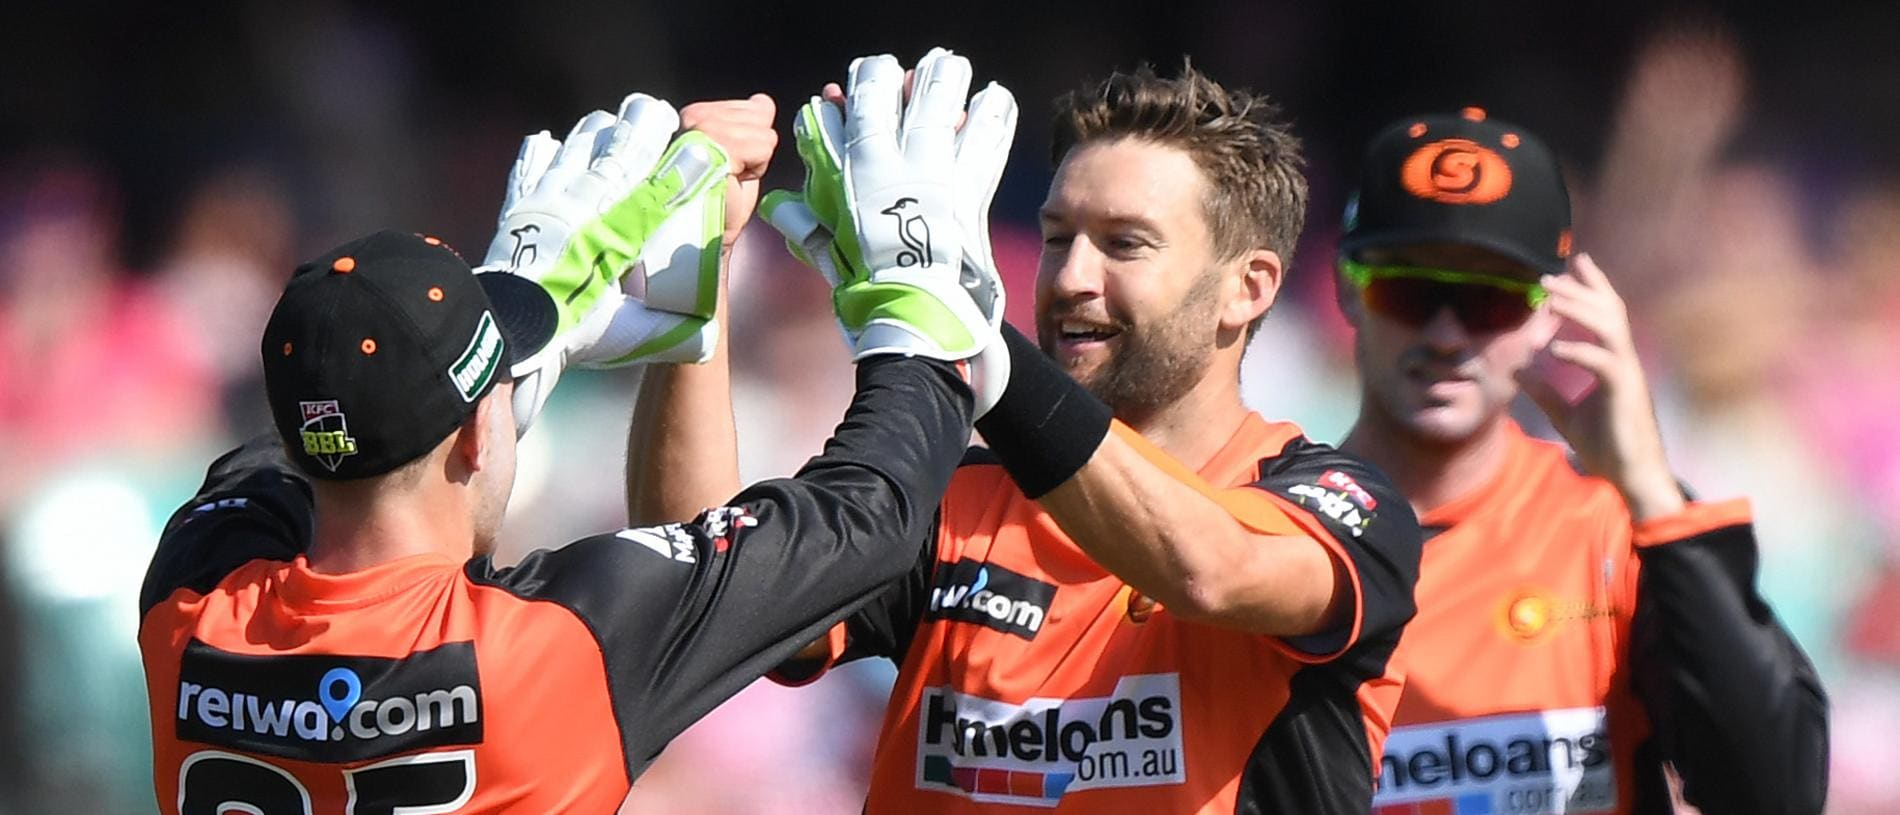 Andrew Tye of the Scorchers (centre) celebrates the dismissal of Sam Billings of the Sixers during the Big Bash League (BBL) cricket match between the Sydney Sixers and Perth Scorchers at the Sydney Cricket Ground (SCG) in Sydney, Saturday, December 23, 2017. (AAP Image/David Moir) NO ARCHIVING, EDITORIAL USE ONLY